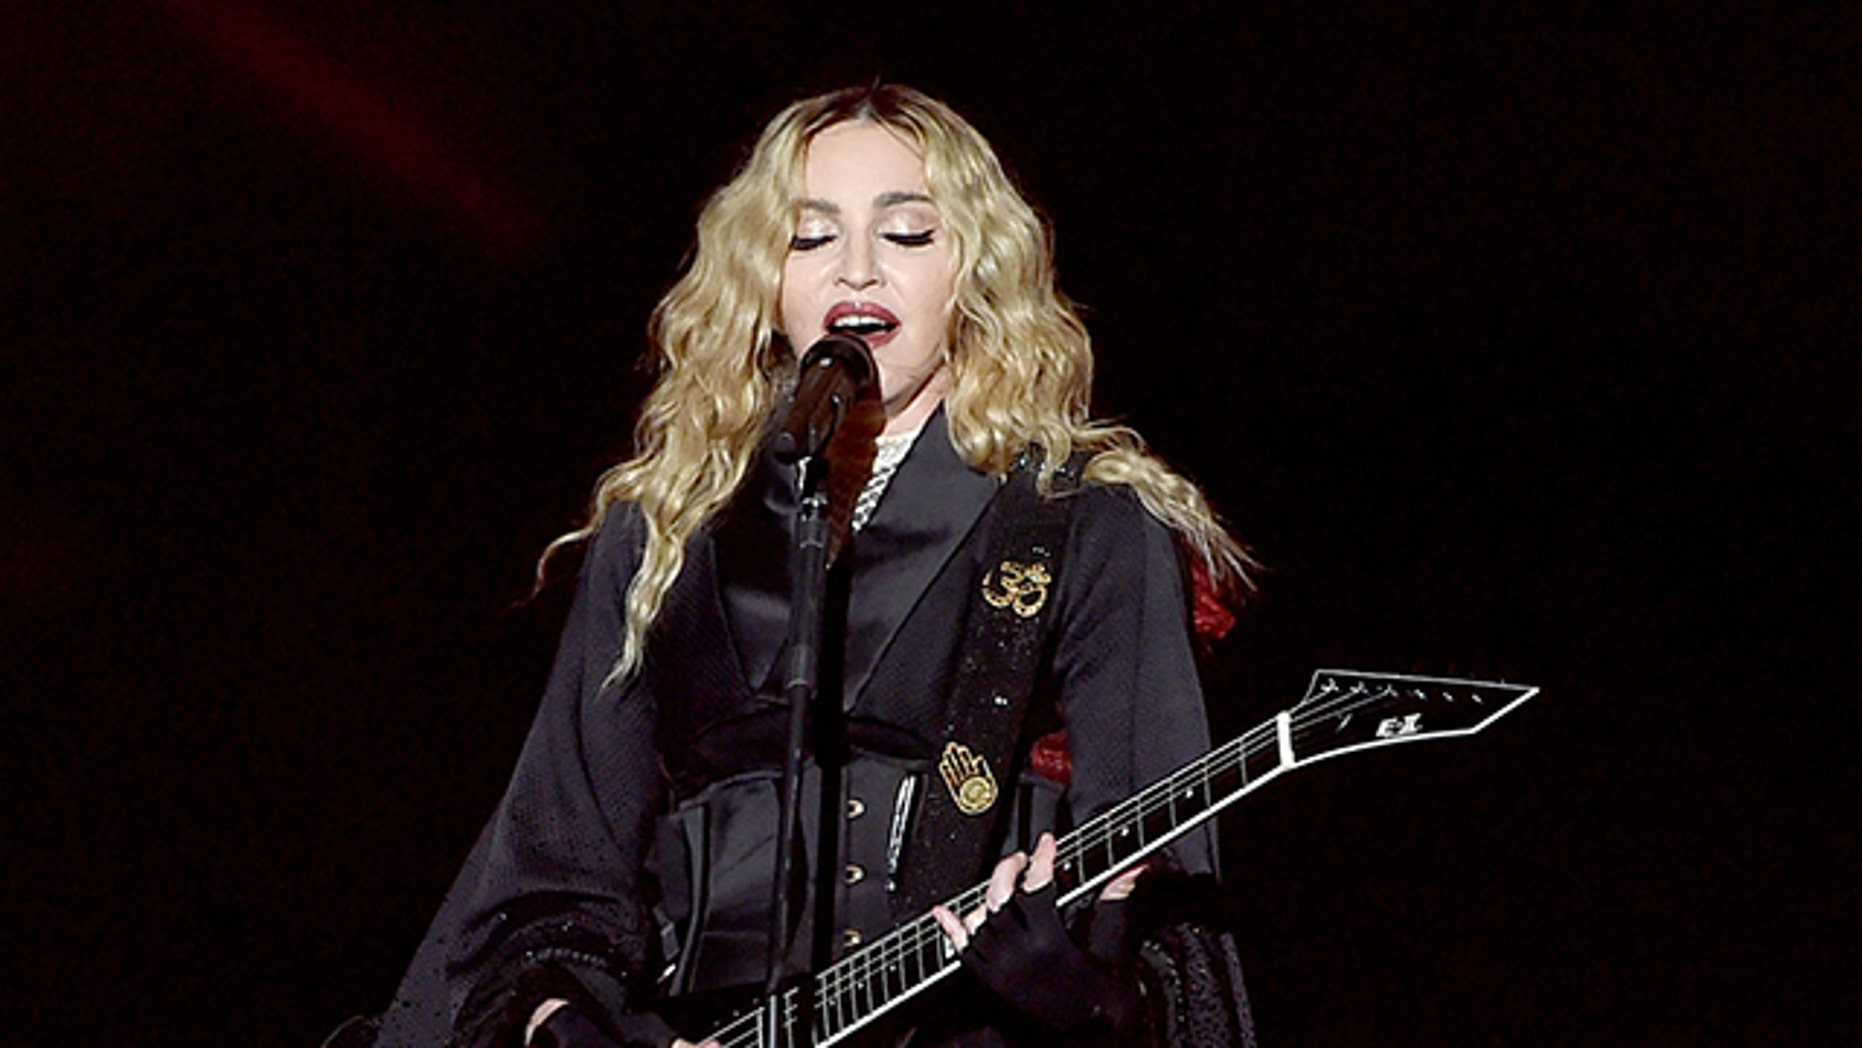 January 2016. Madonna in concert.